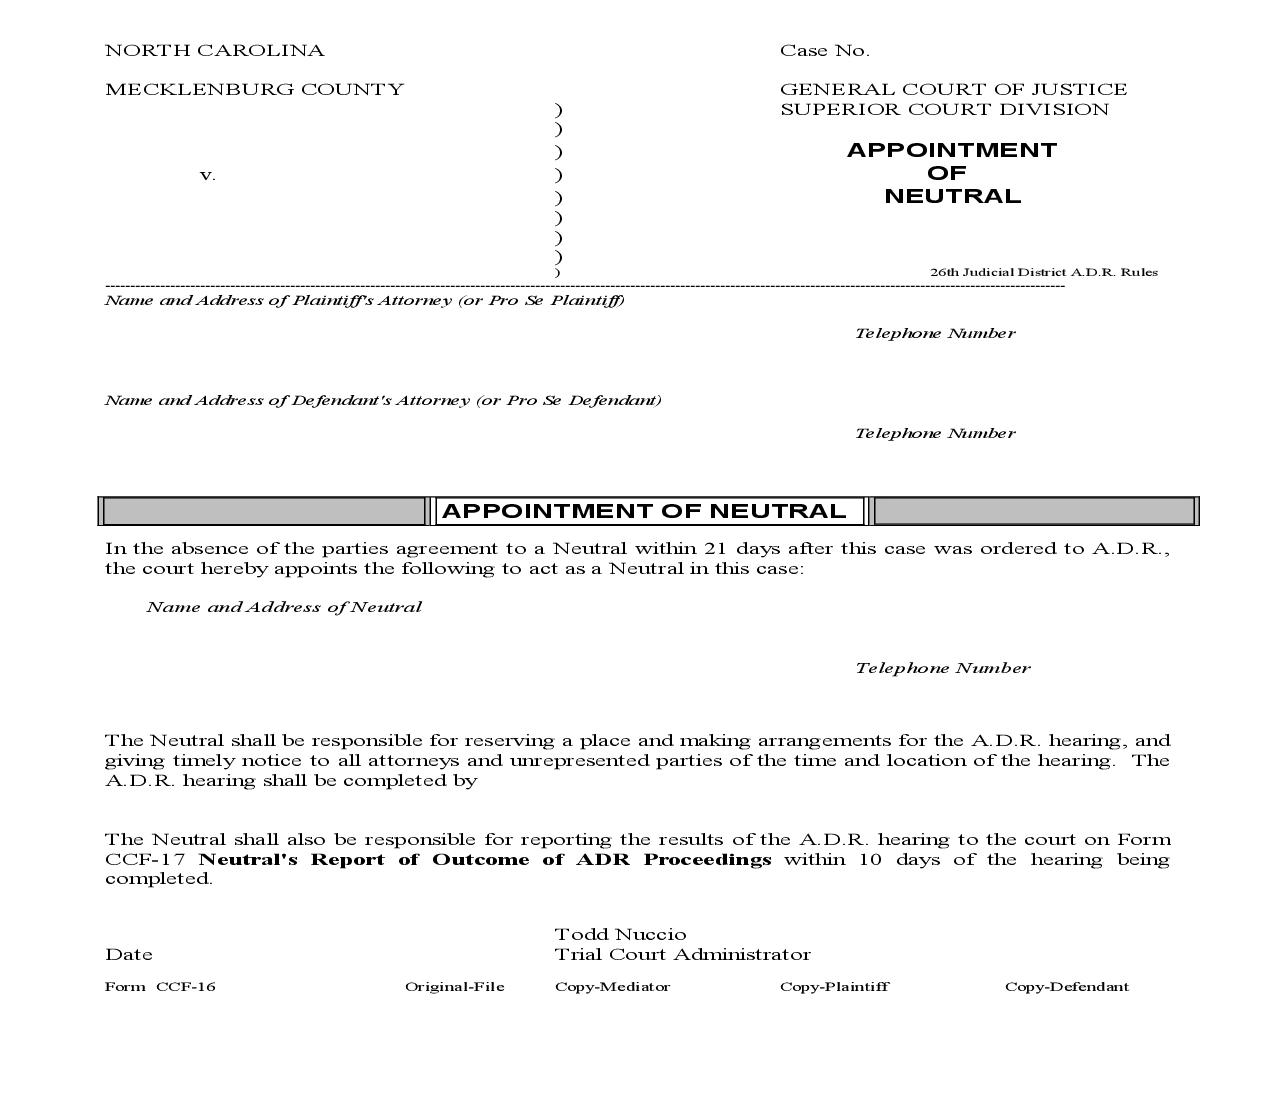 Appointment Of Neutral By Trial Court Administrator {CCF-16}   Pdf Fpdf Doc Docx   North Carolina